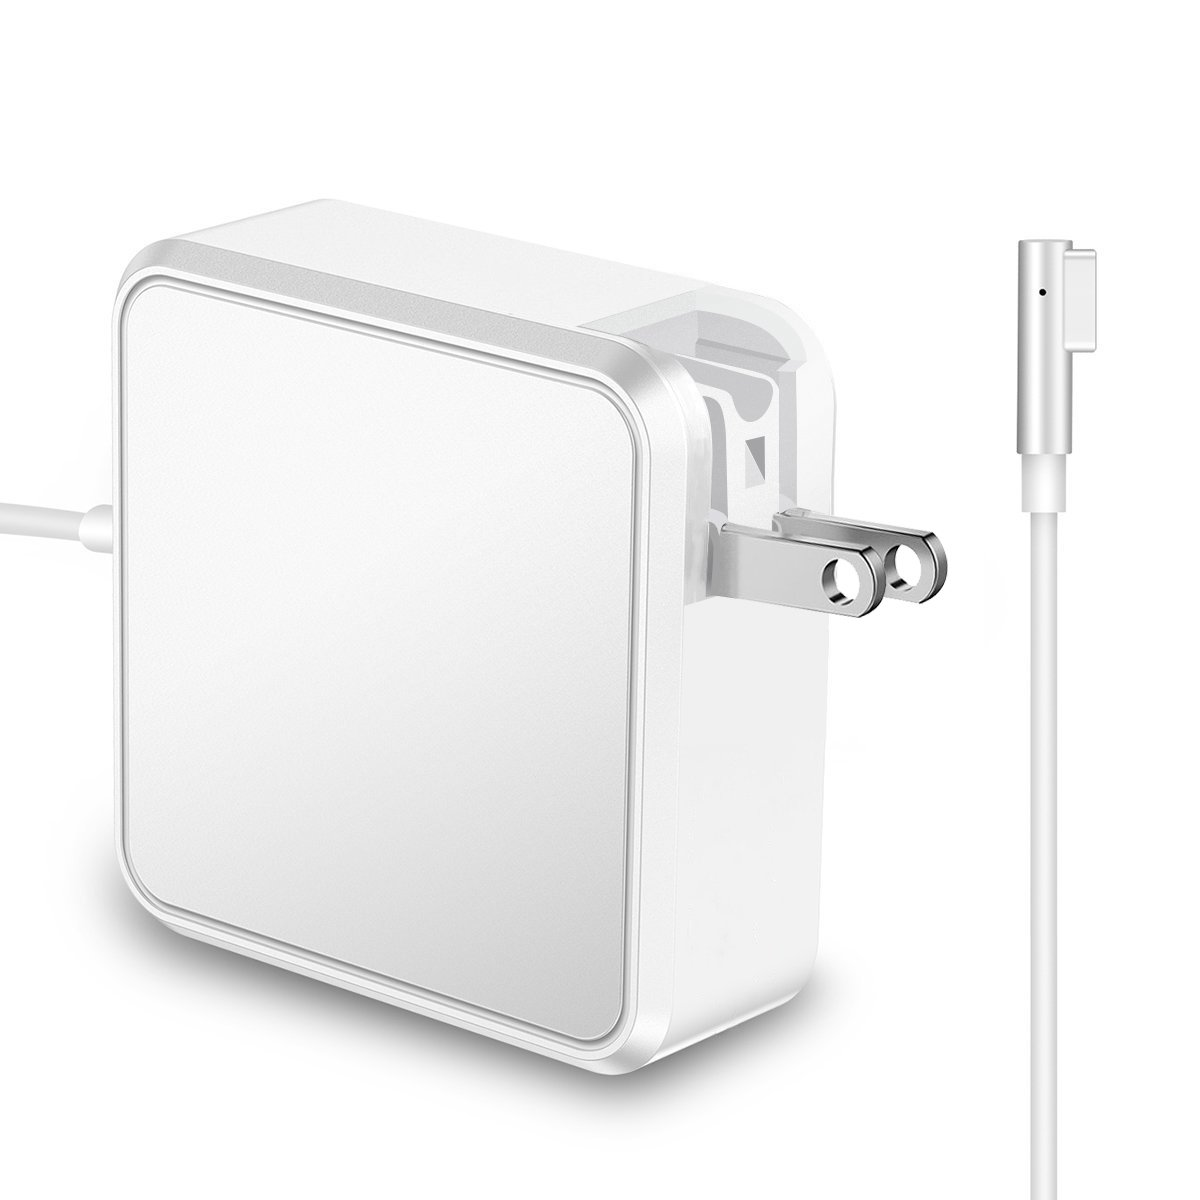 Compatible with MacBook Air Charger, koea 45W AC Adapter with Magsafe 1 L-Tip Magnetic Connector for A1237 A1244 A1304 A1369 A1370 A1374 A1377 11'' 13'' (Released Before Mid 2012)